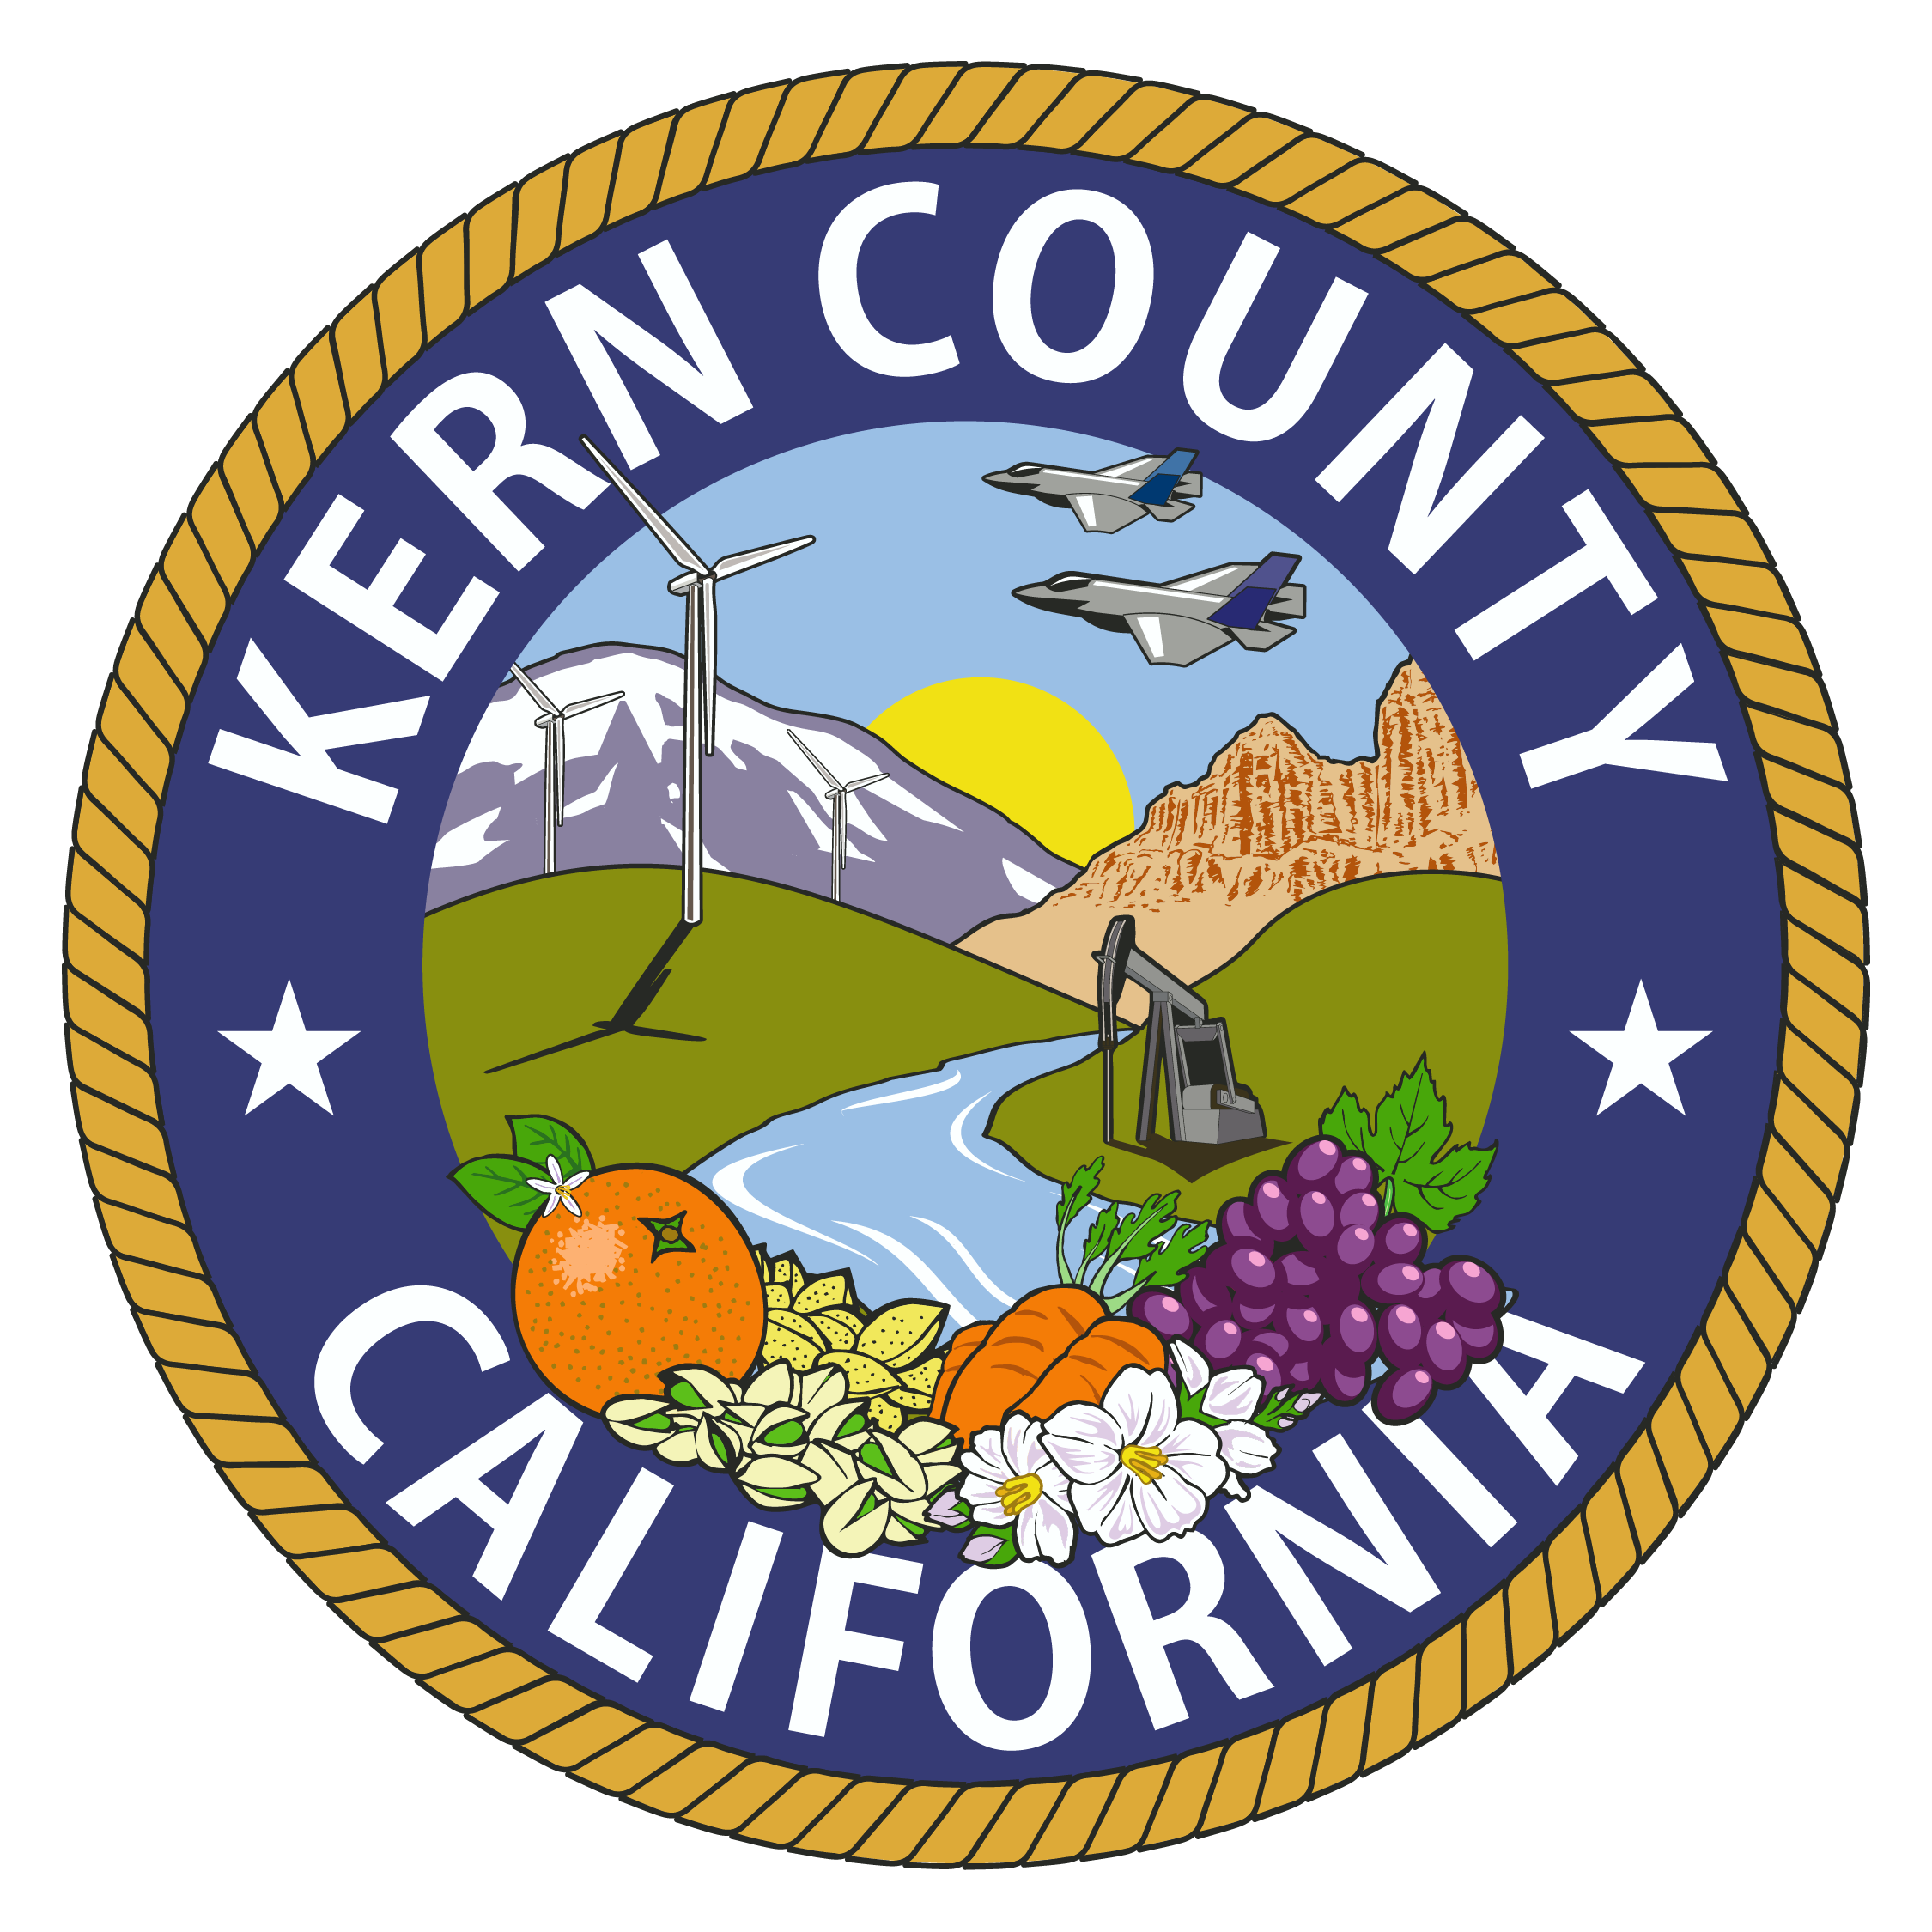 Congress clipart direct election senator. Kern county elections division